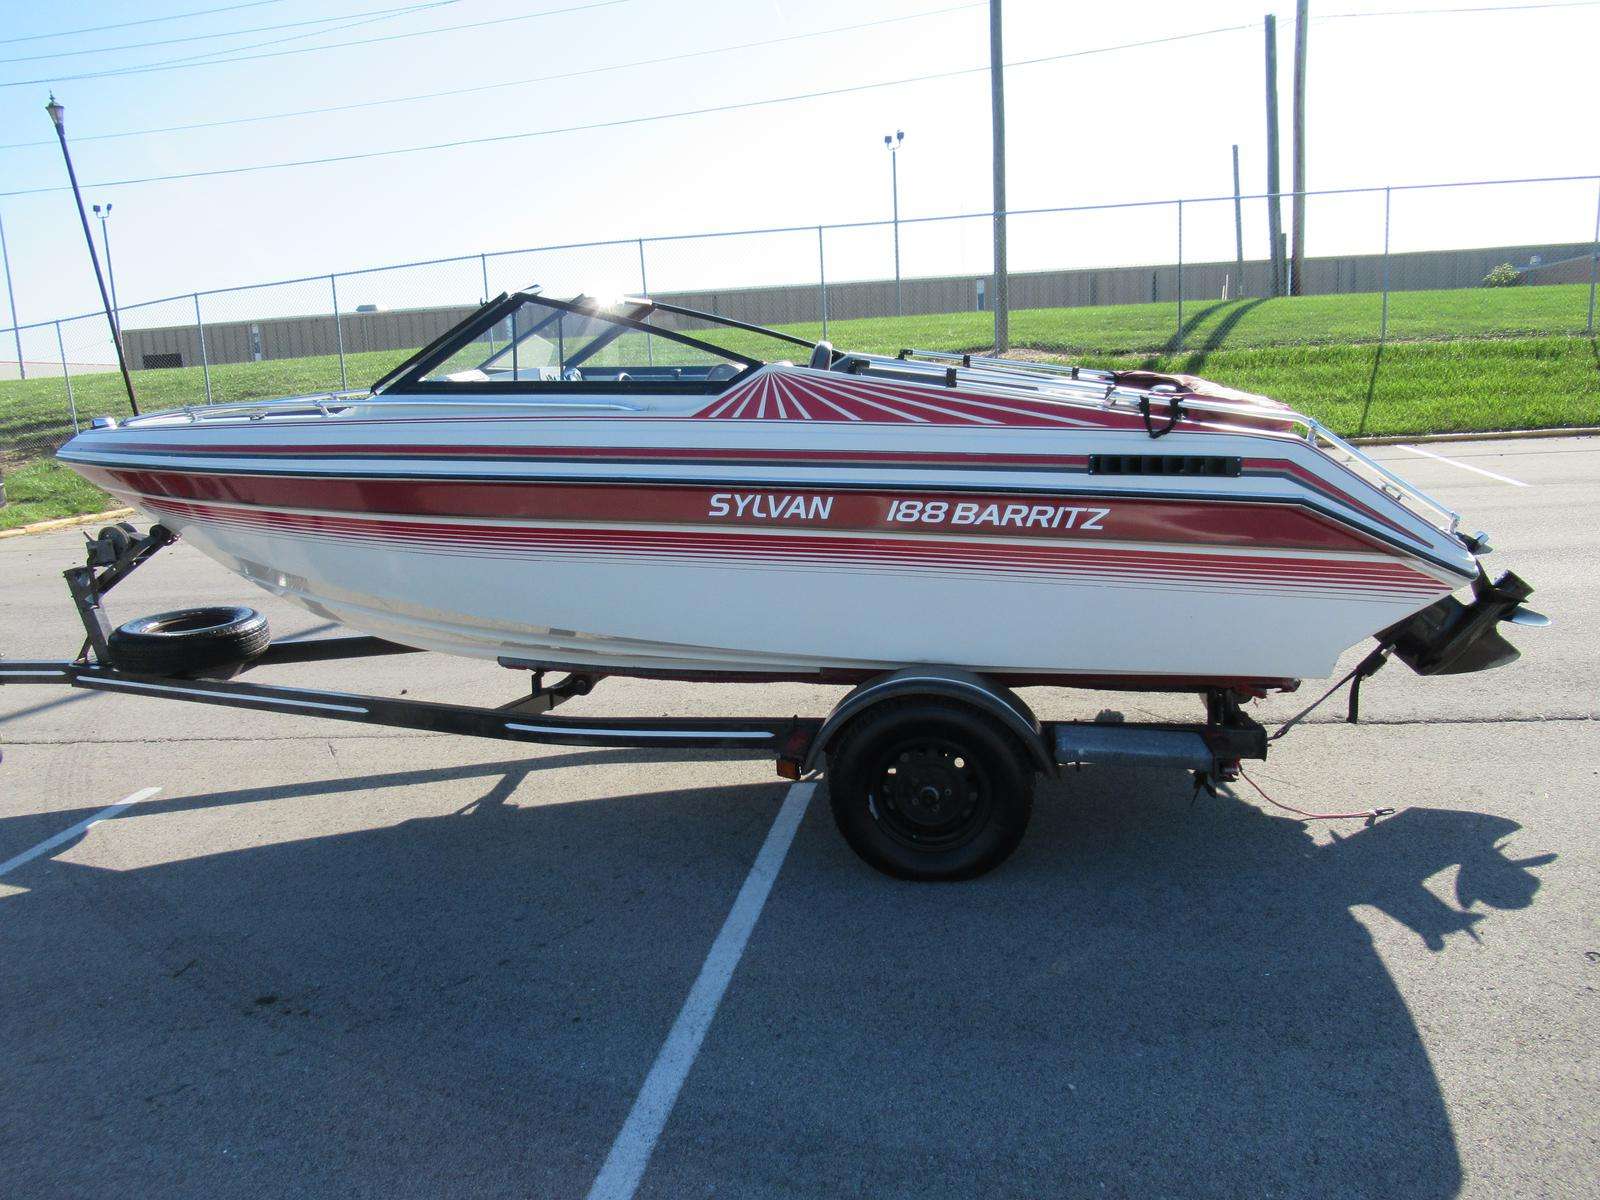 Sylvan Boat Wiring 89 Real Diagram Pontoon 1989 18 For Sale In Indianapolis Just Add Water Boats Rh Justaddwaterboats Com Deck Used Fishing